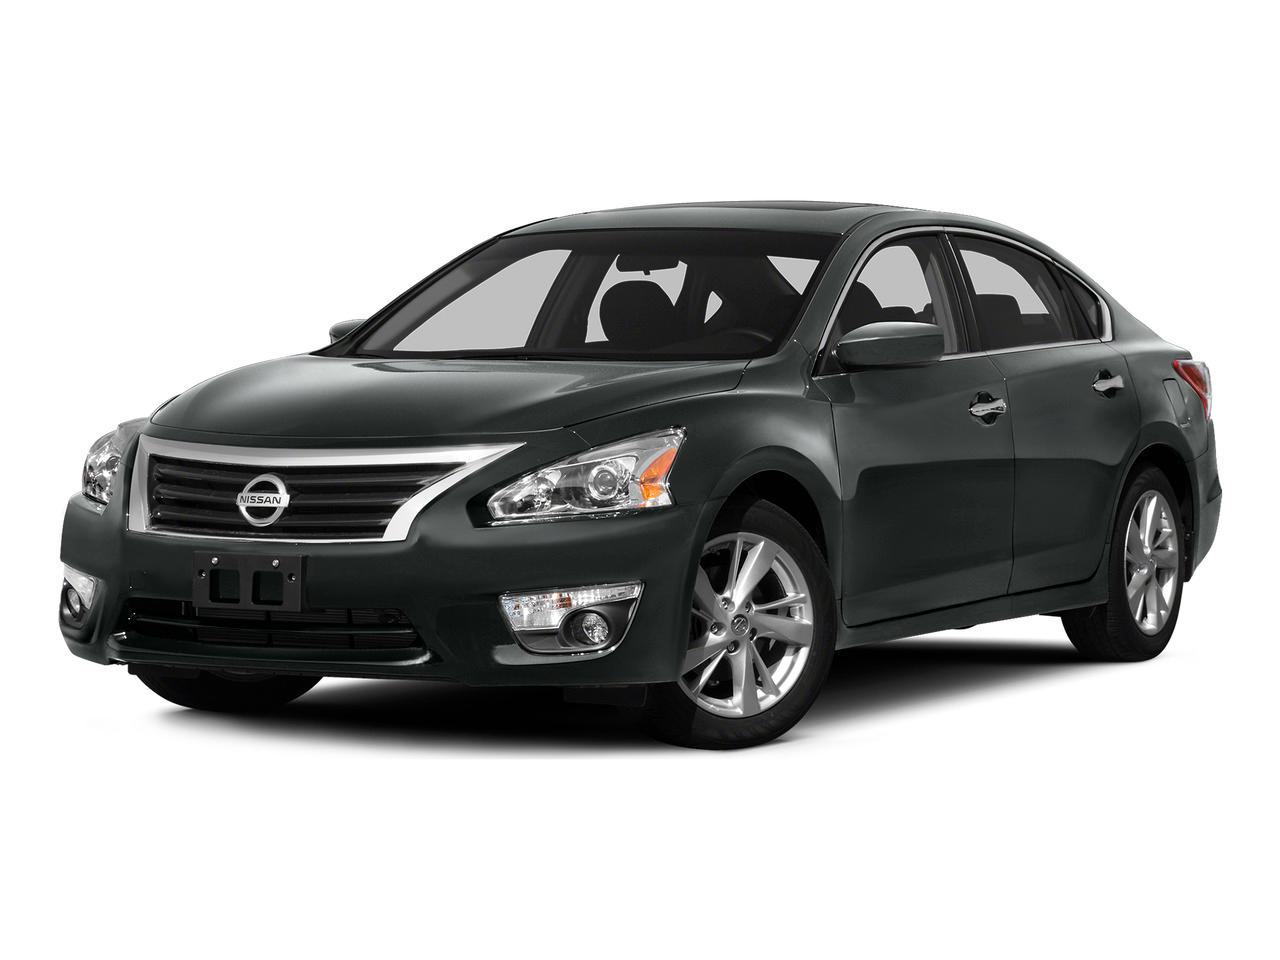 2015 Nissan Altima Vehicle Photo in Grapevine, TX 76051